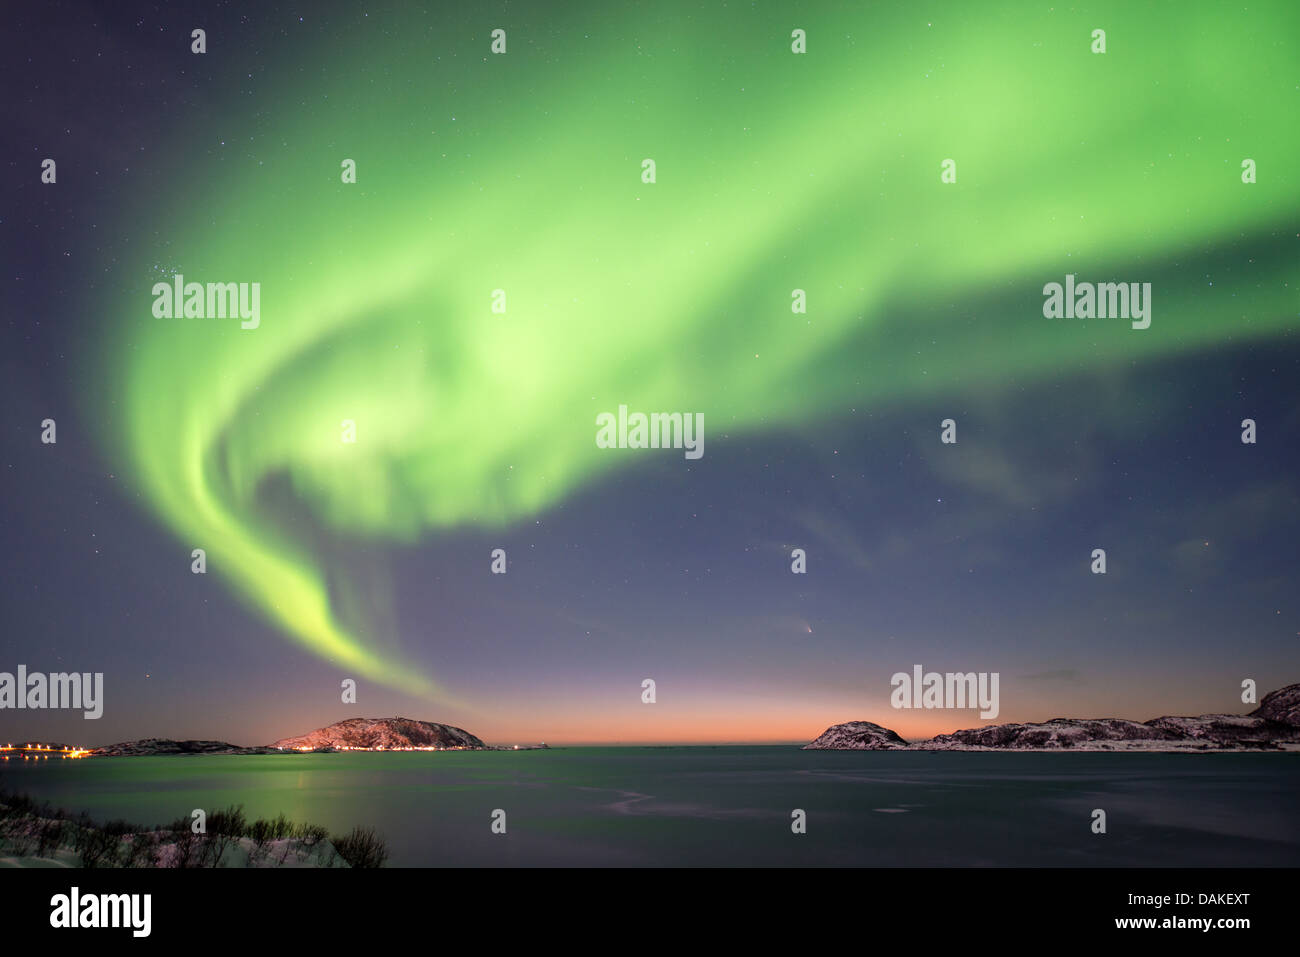 aurora borealis in dusk over island Kvaloeya, Norway, Troms - Stock Image